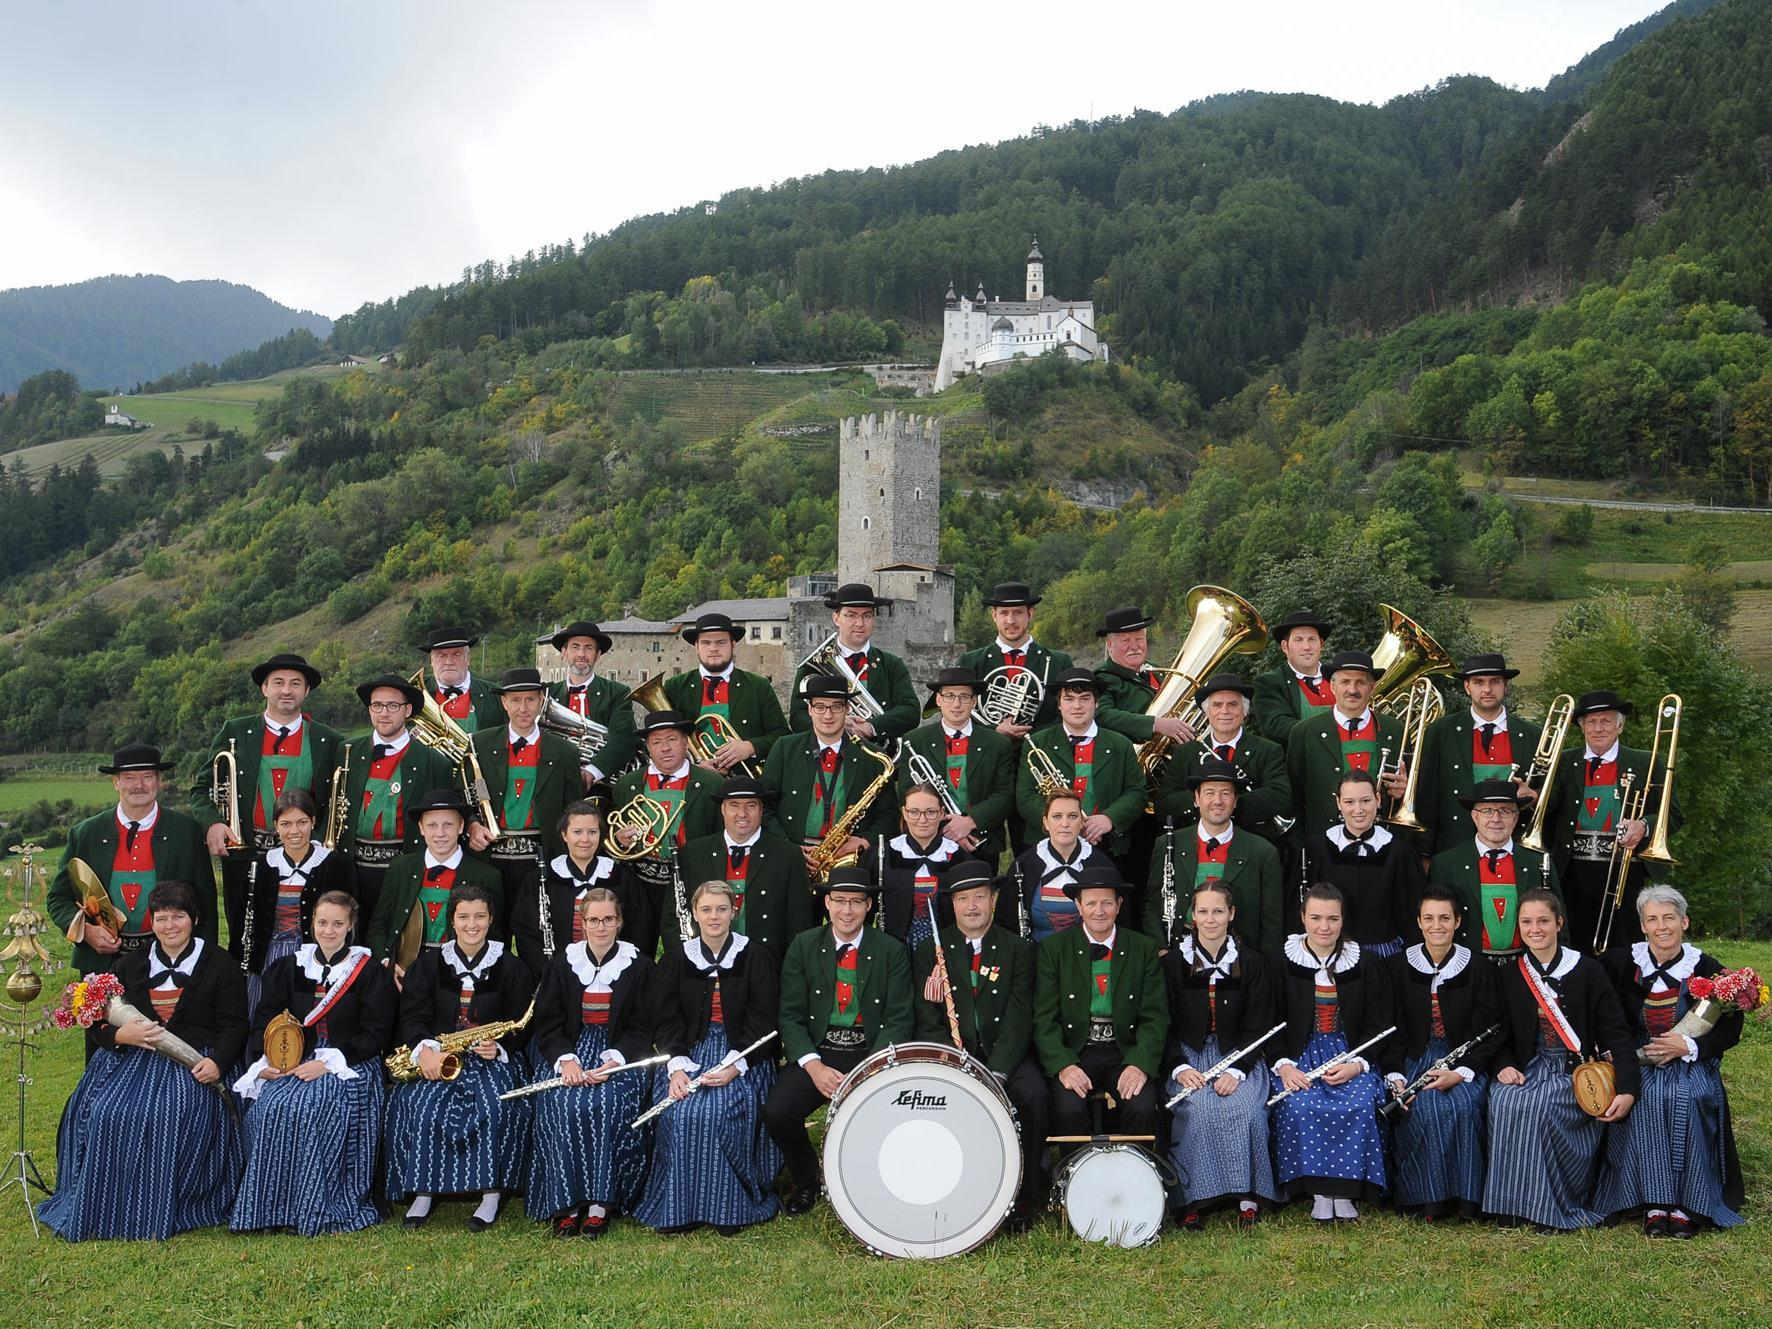 200 years of the band of Burgusio/Burgeis with great Festival and procession